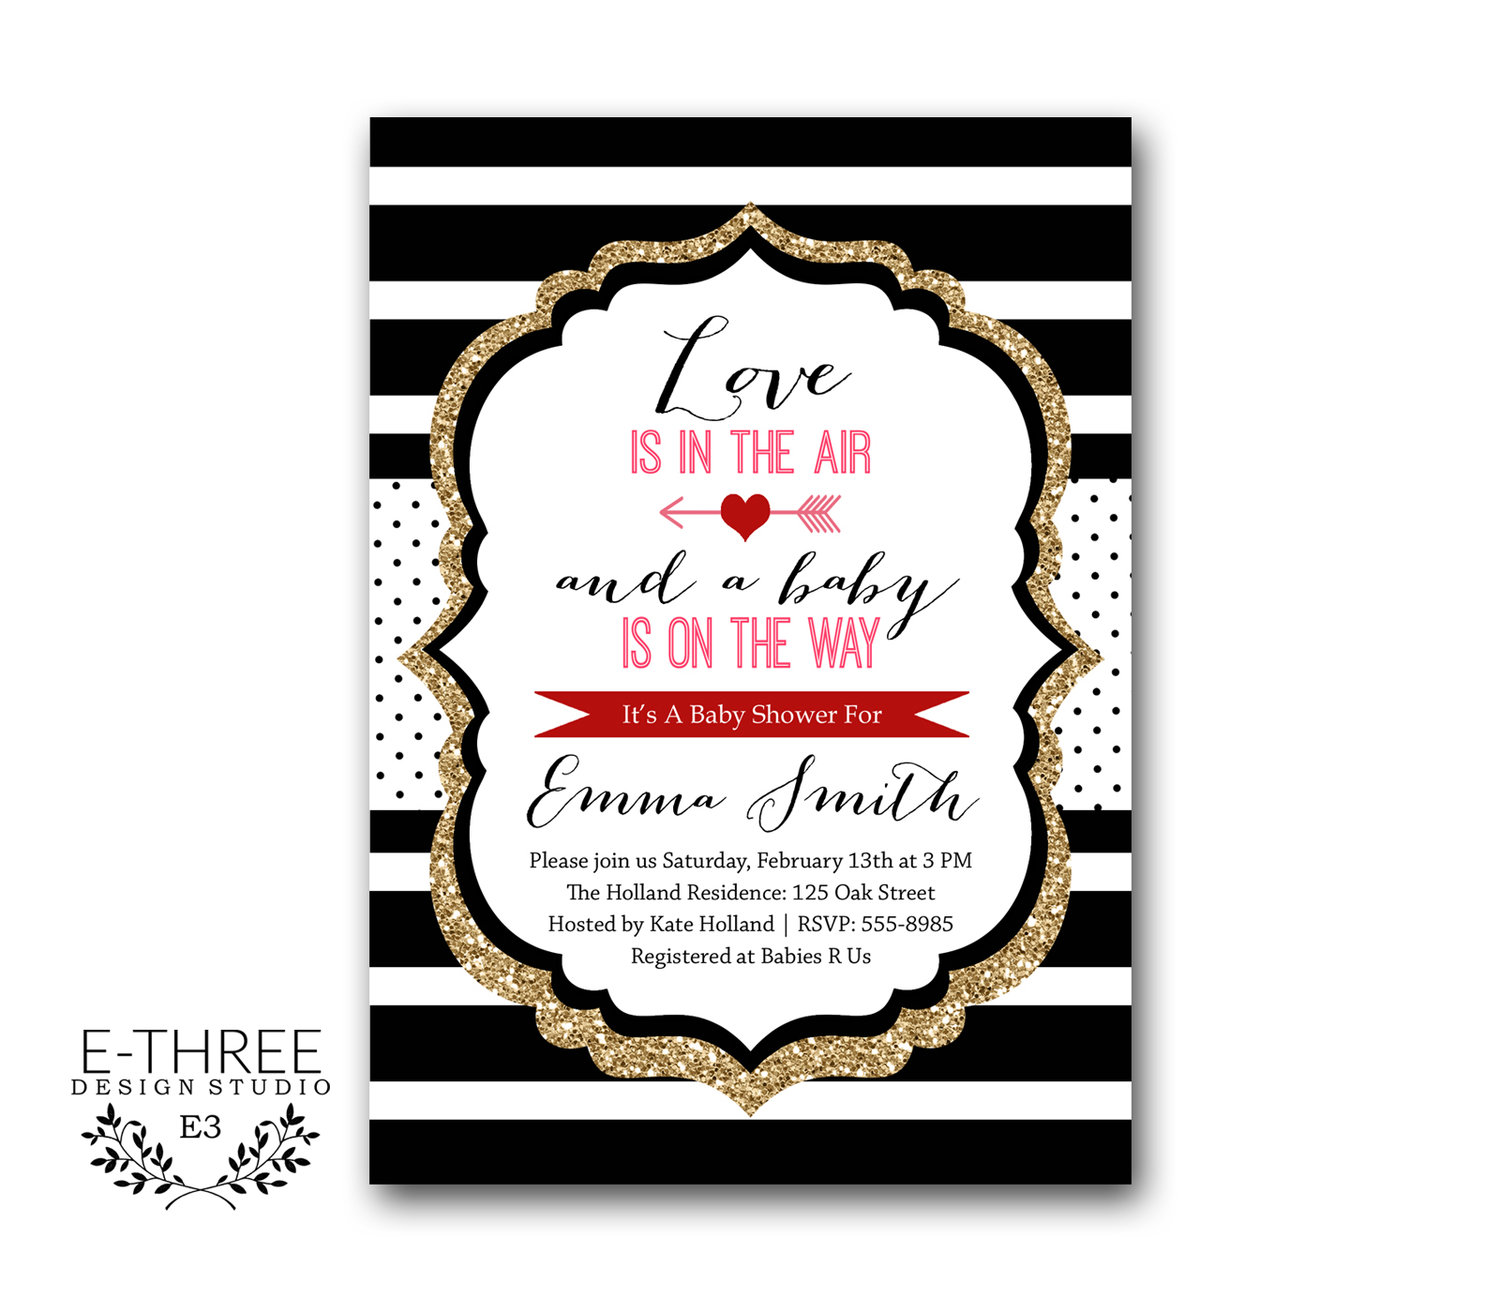 Valentines Baby Shower Invitations - Modern Black, Gold, Red, and ...